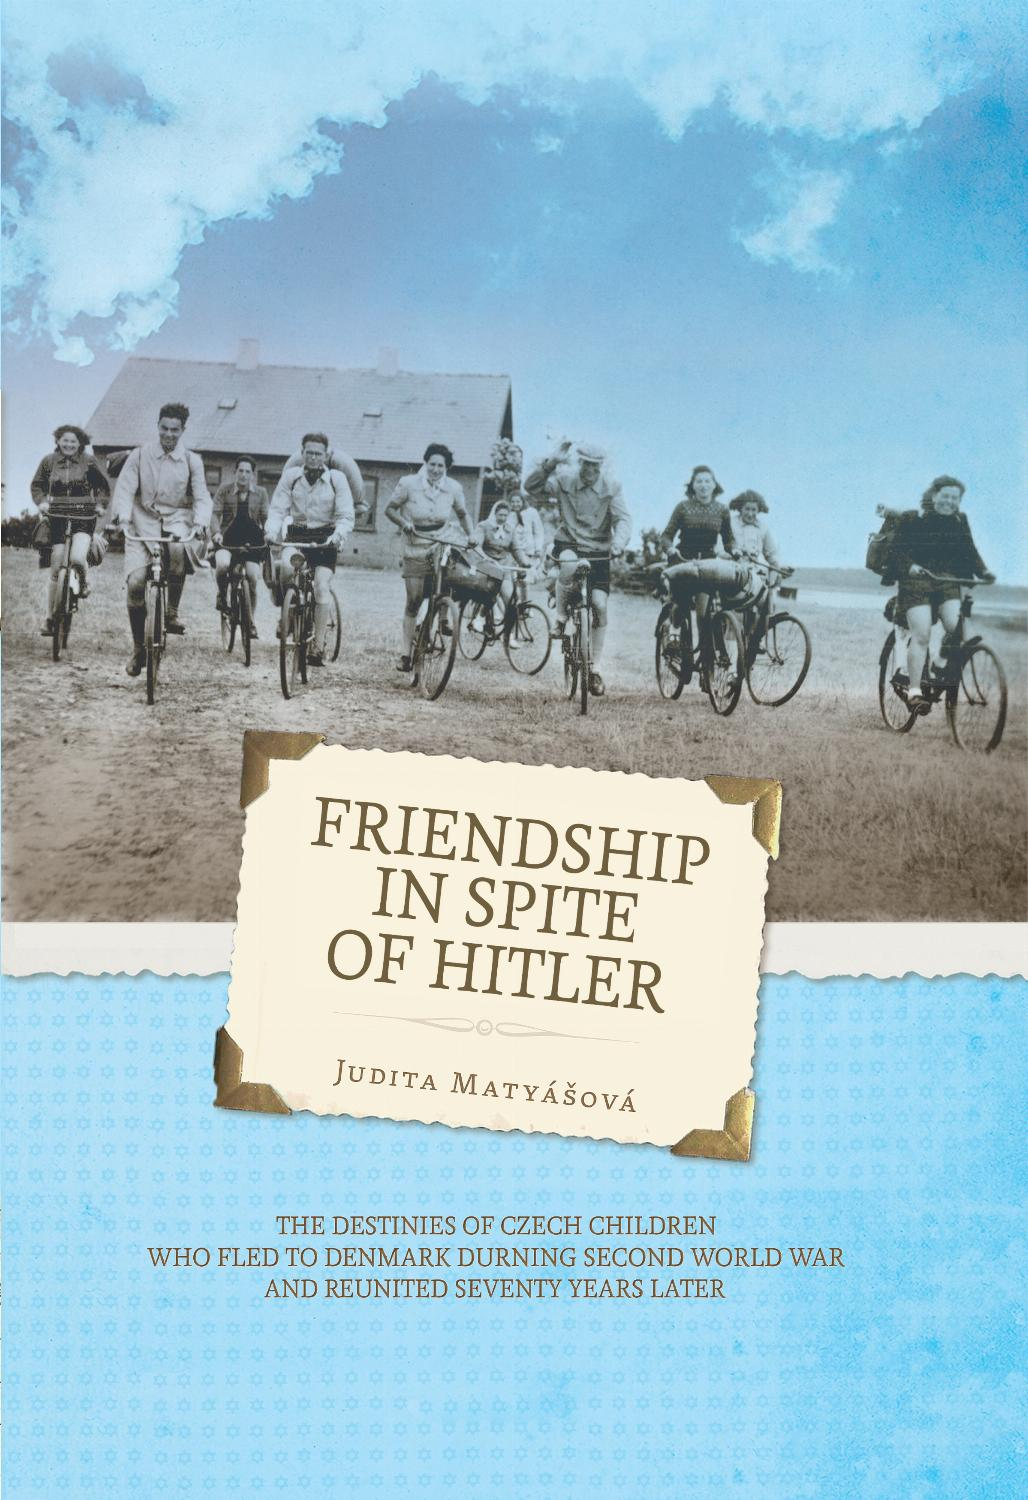 Friendship in spite of Hitler